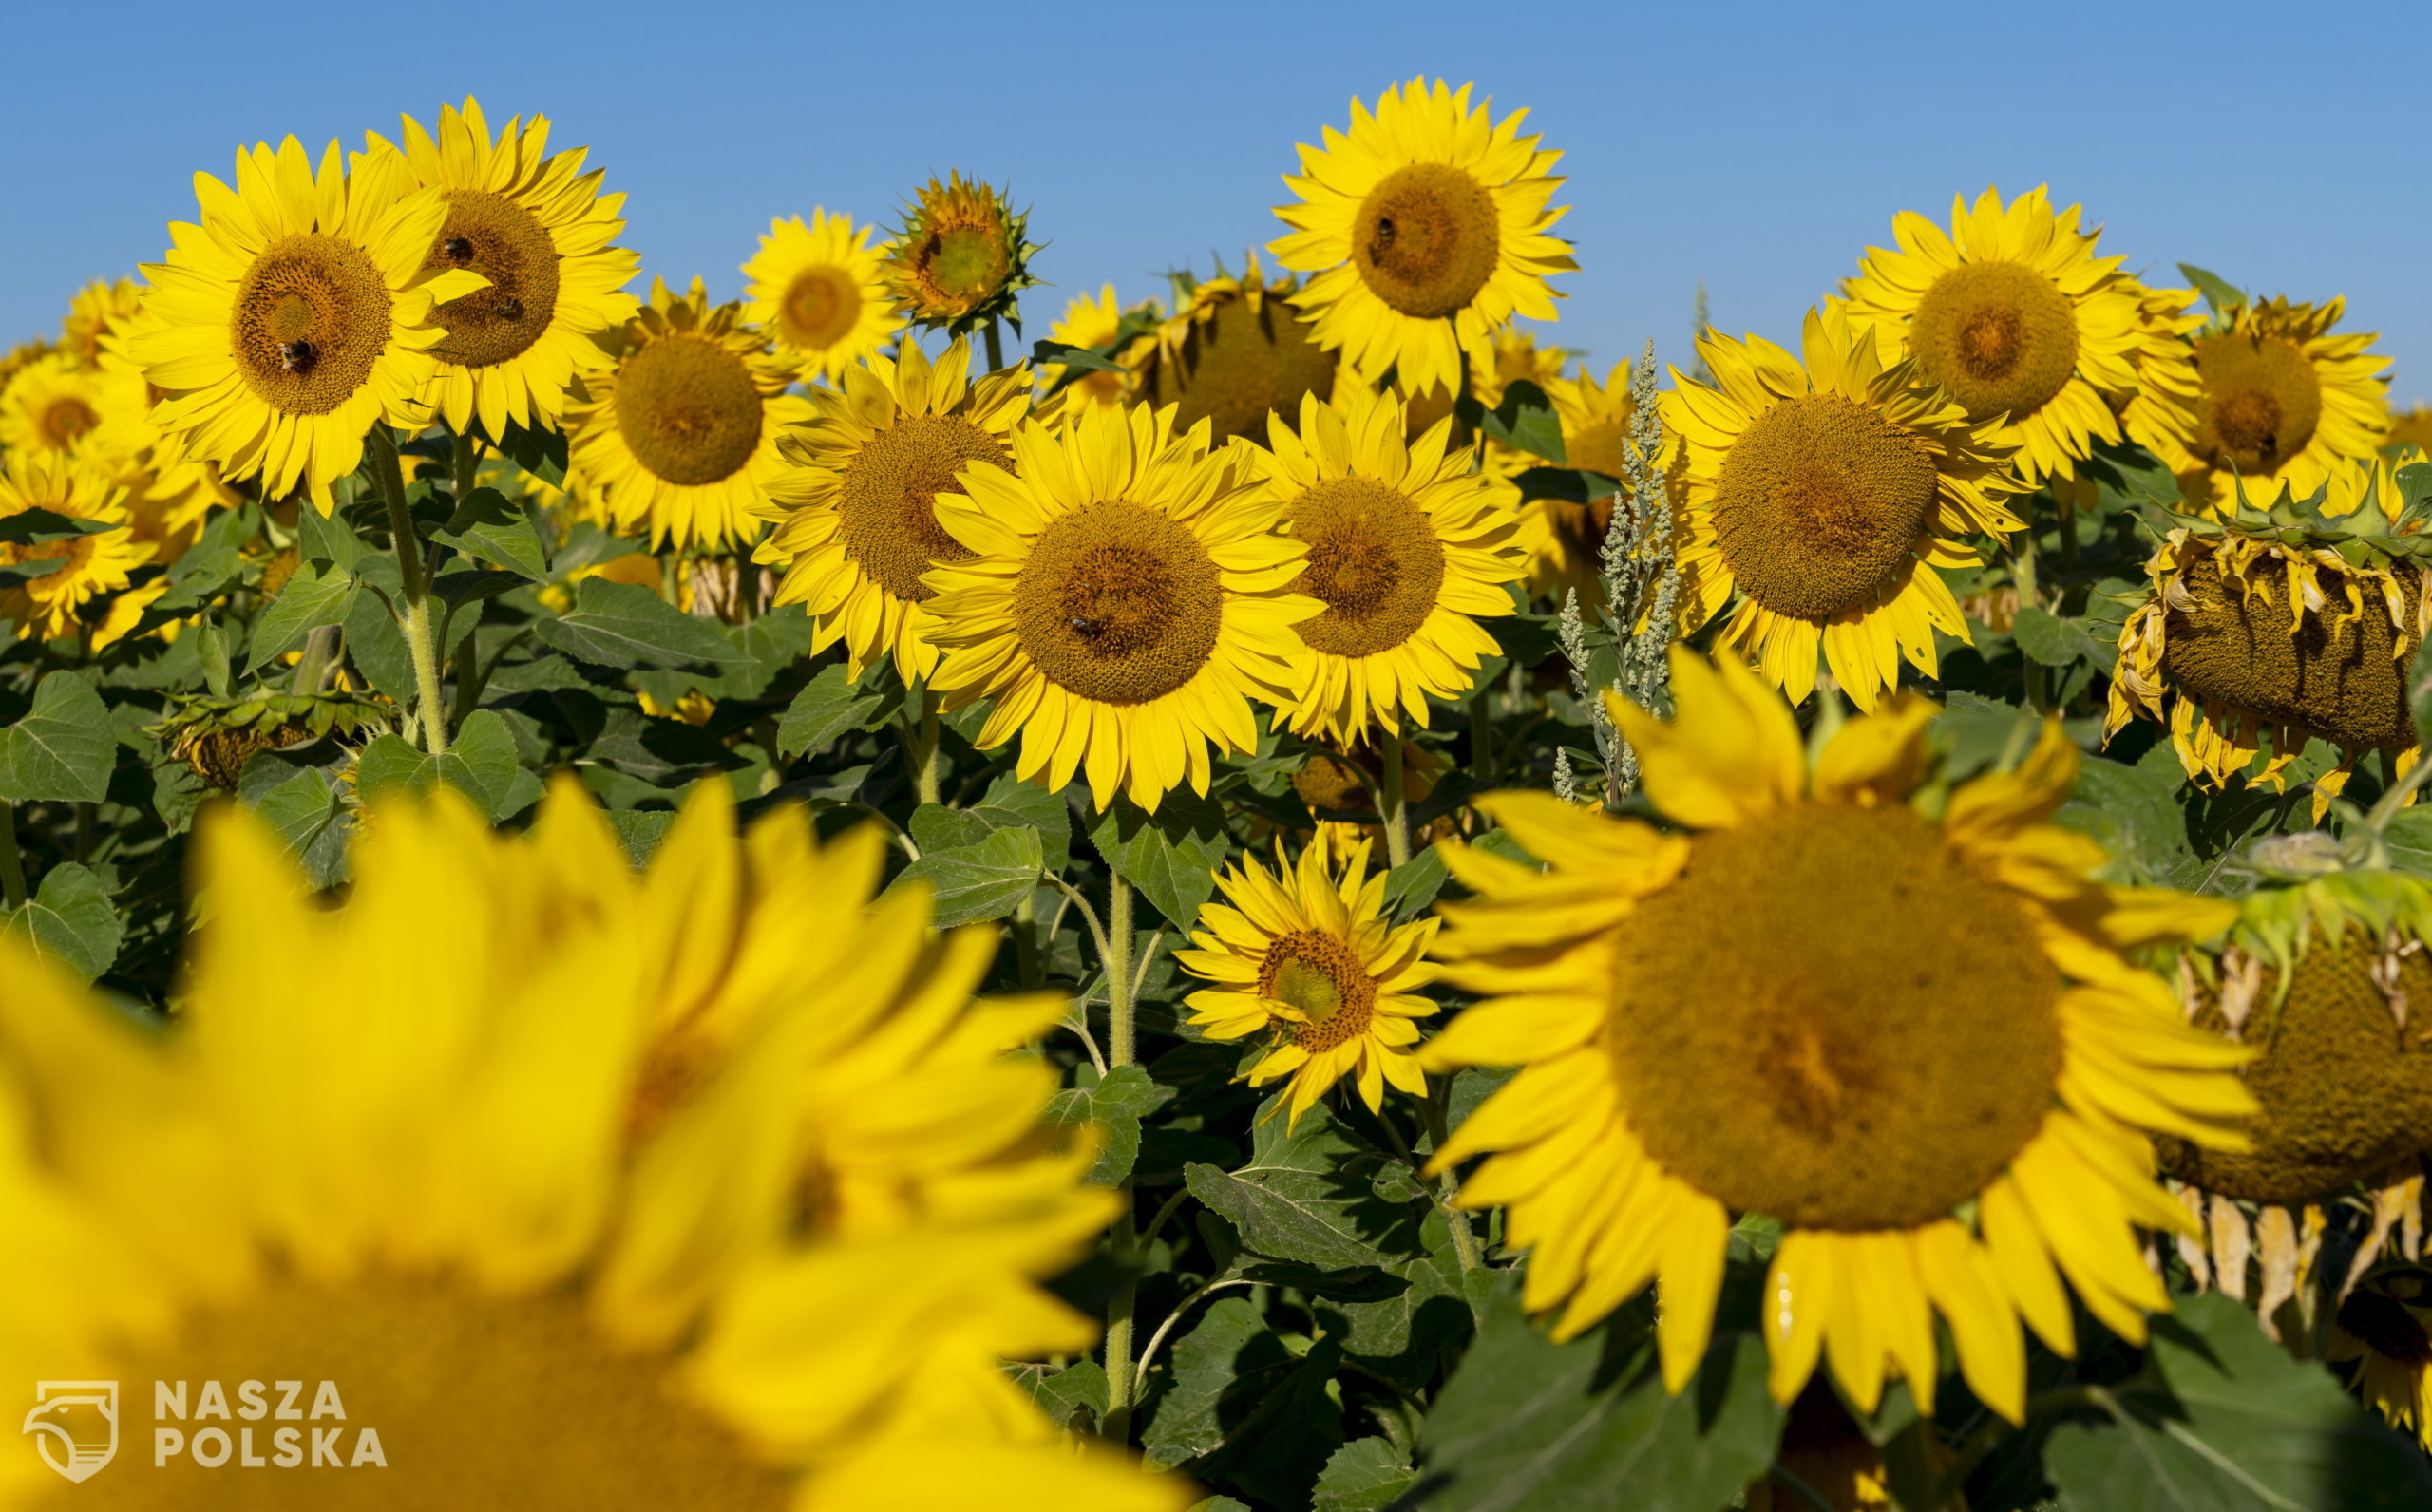 epa08573798 Sunflowers bloom in a field near Alzey, Germany, 30 July 2020. According to weather forecasts, the next days are expected to bring temperatures at about 34 degrees Celsius in south-western Germany.  EPA/RONALD WITTEK  Dostawca: PAP/EPA.